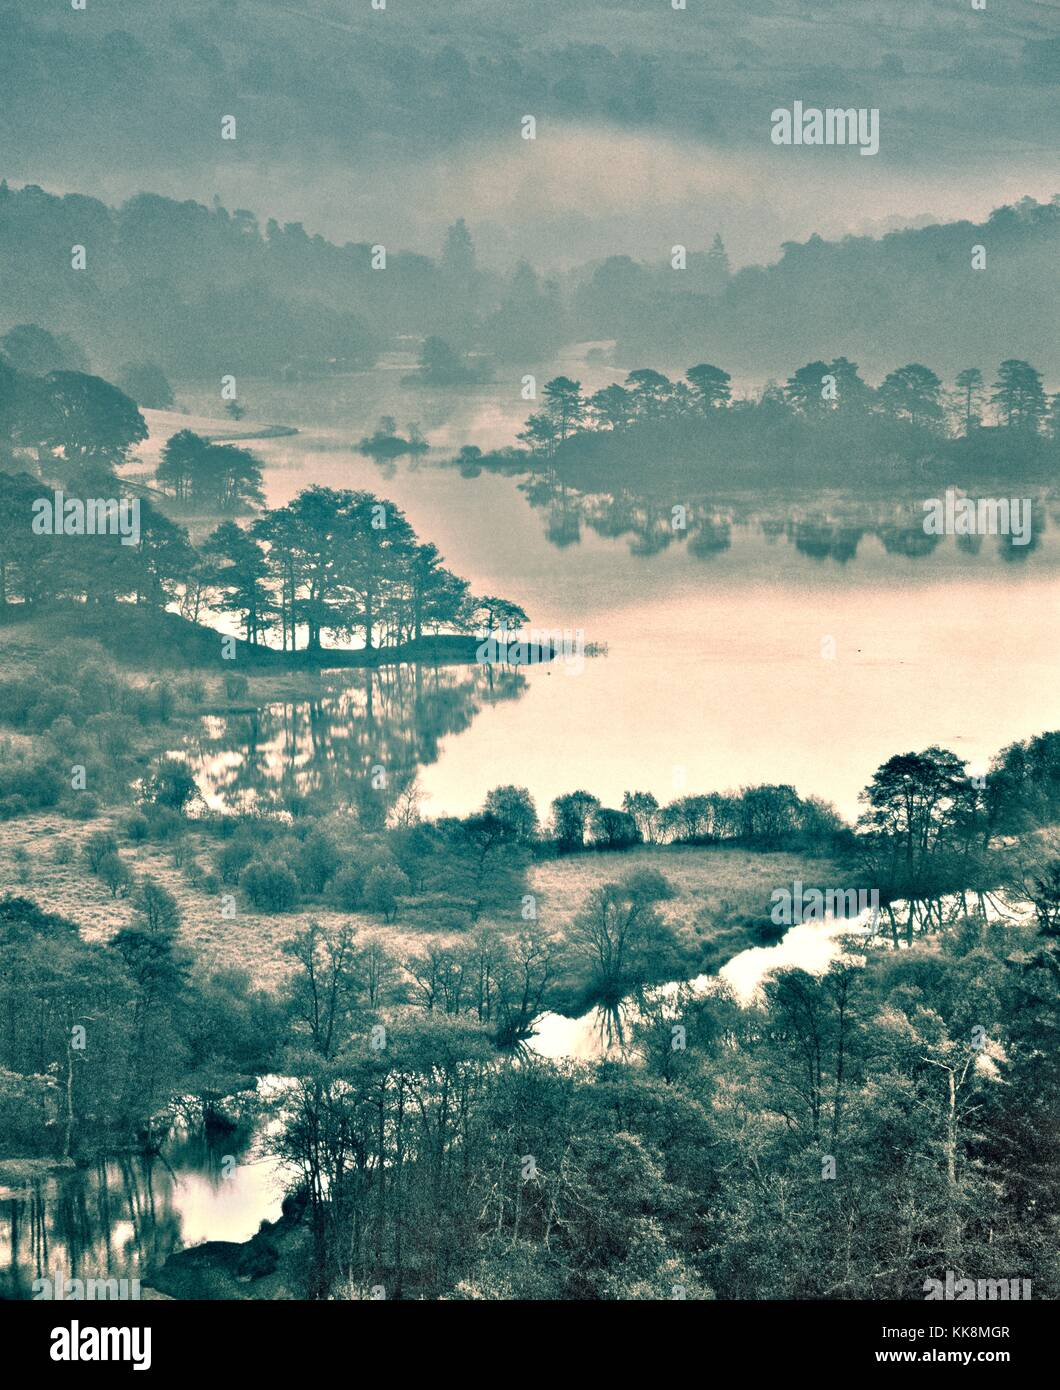 Rydal Water in the Lake District National Park near Grasmere, Ambleside and Windermere. Cumbria, England. Winter - Stock Image